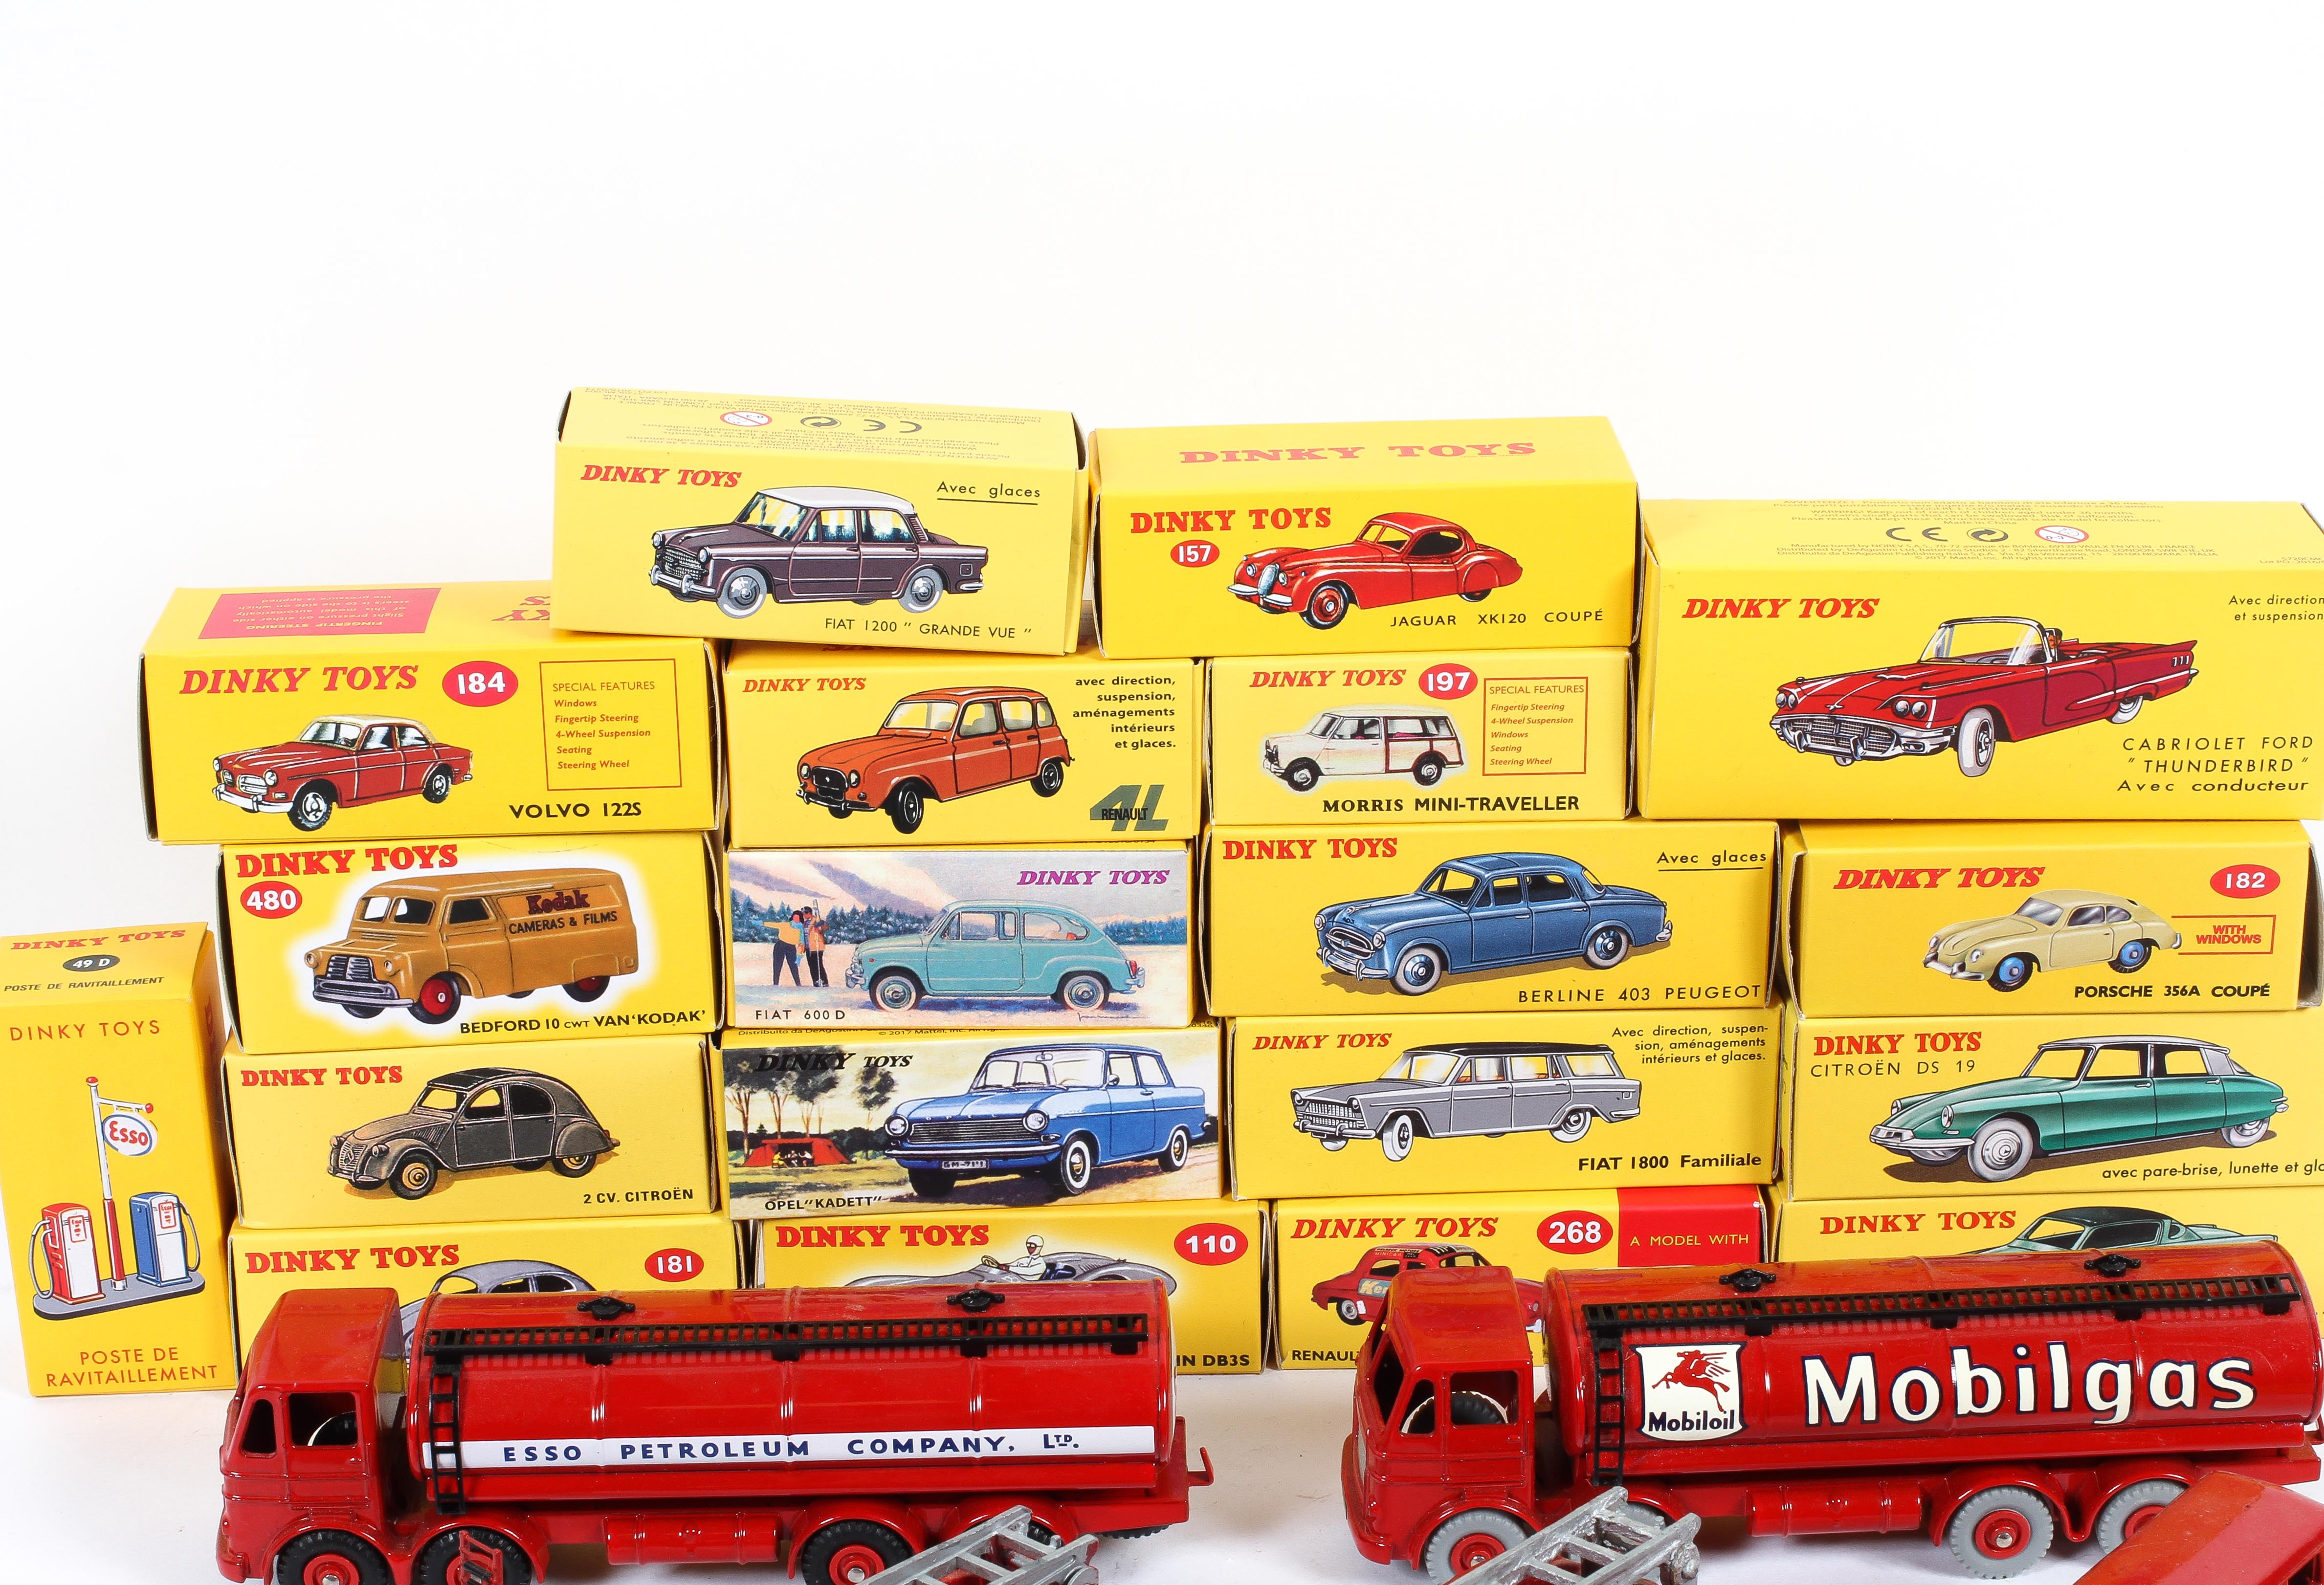 A collection of Dinky Toys in boxes, including: a Cabriolet Ford Thunderbird, an Aston Martin, - Image 2 of 3